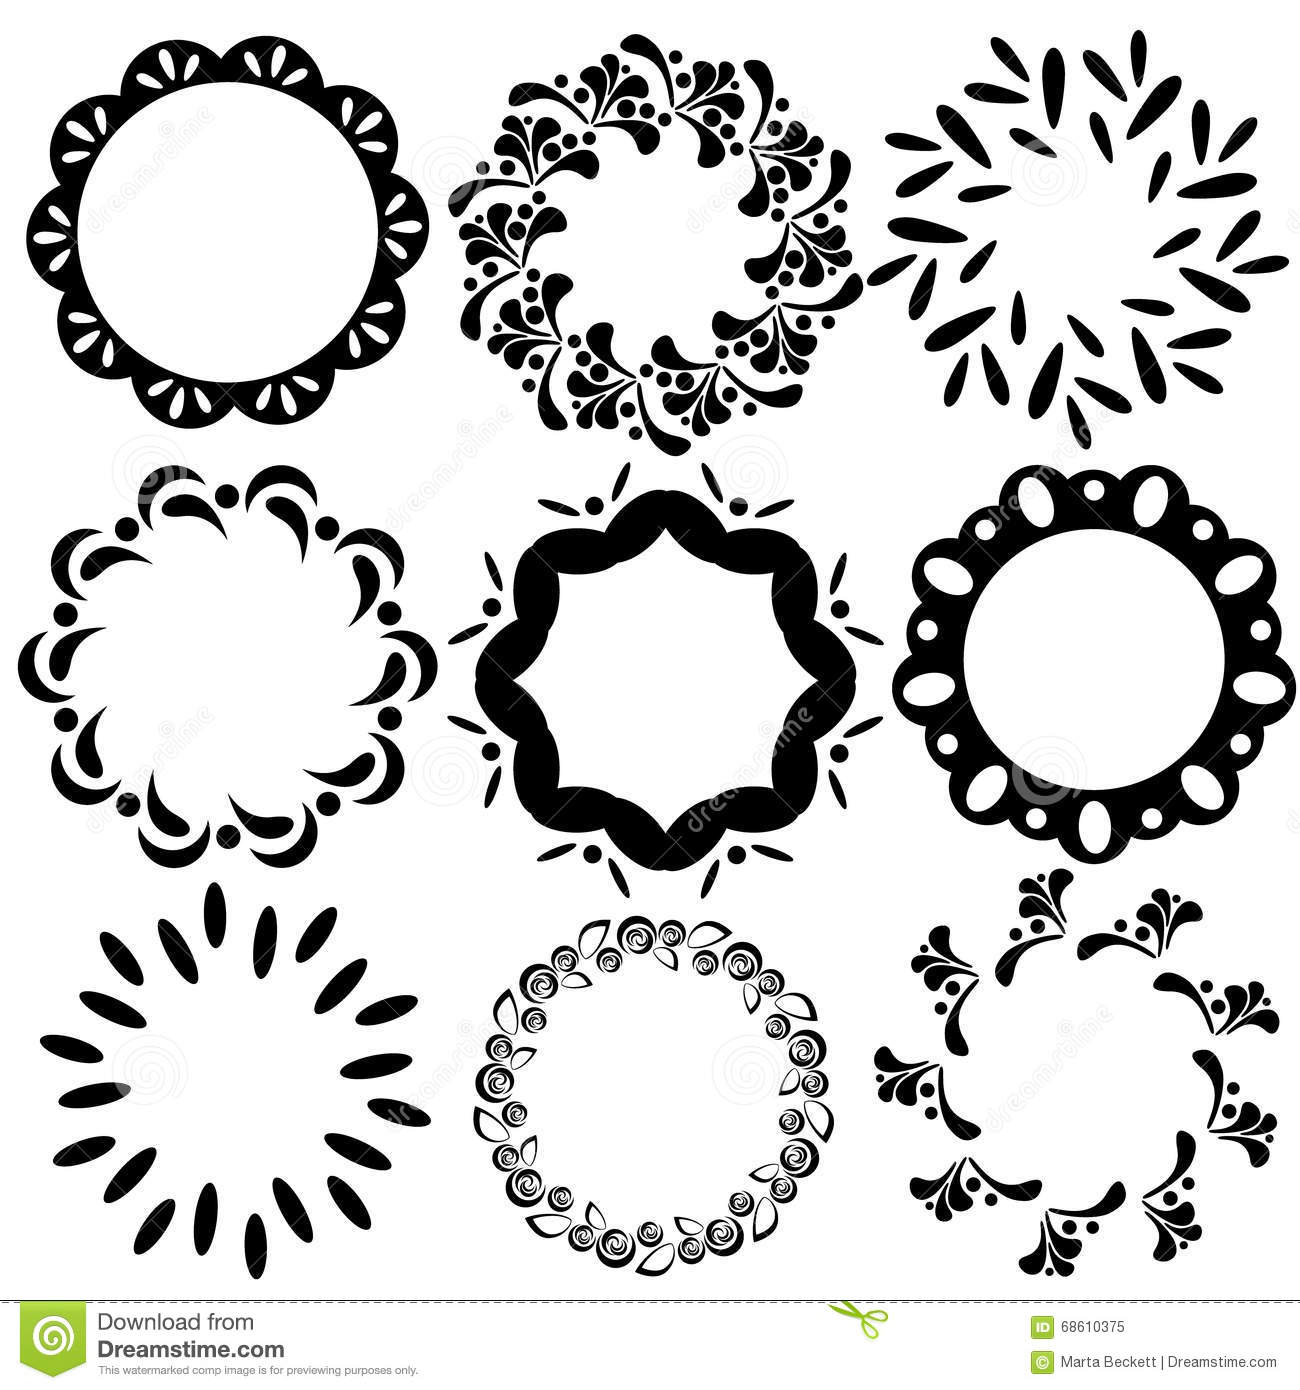 Simple floral ornament background vector 02 - Vector Background ...